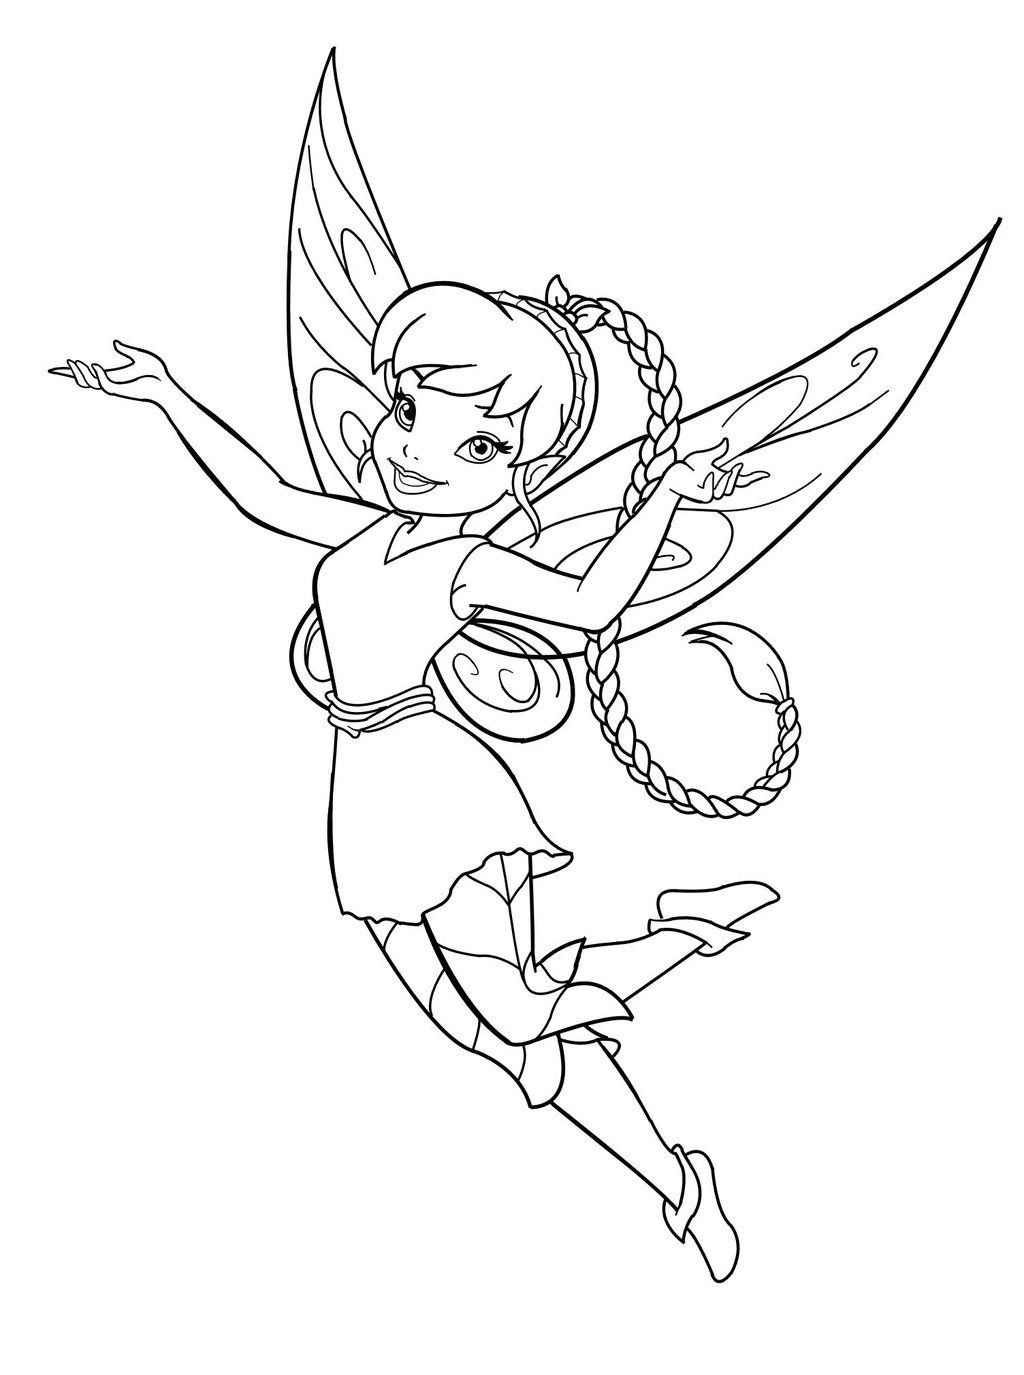 Free Printable Fairy Coloring Pages For Kids   Coloring Therapy - Free Printable Fairy Coloring Pictures